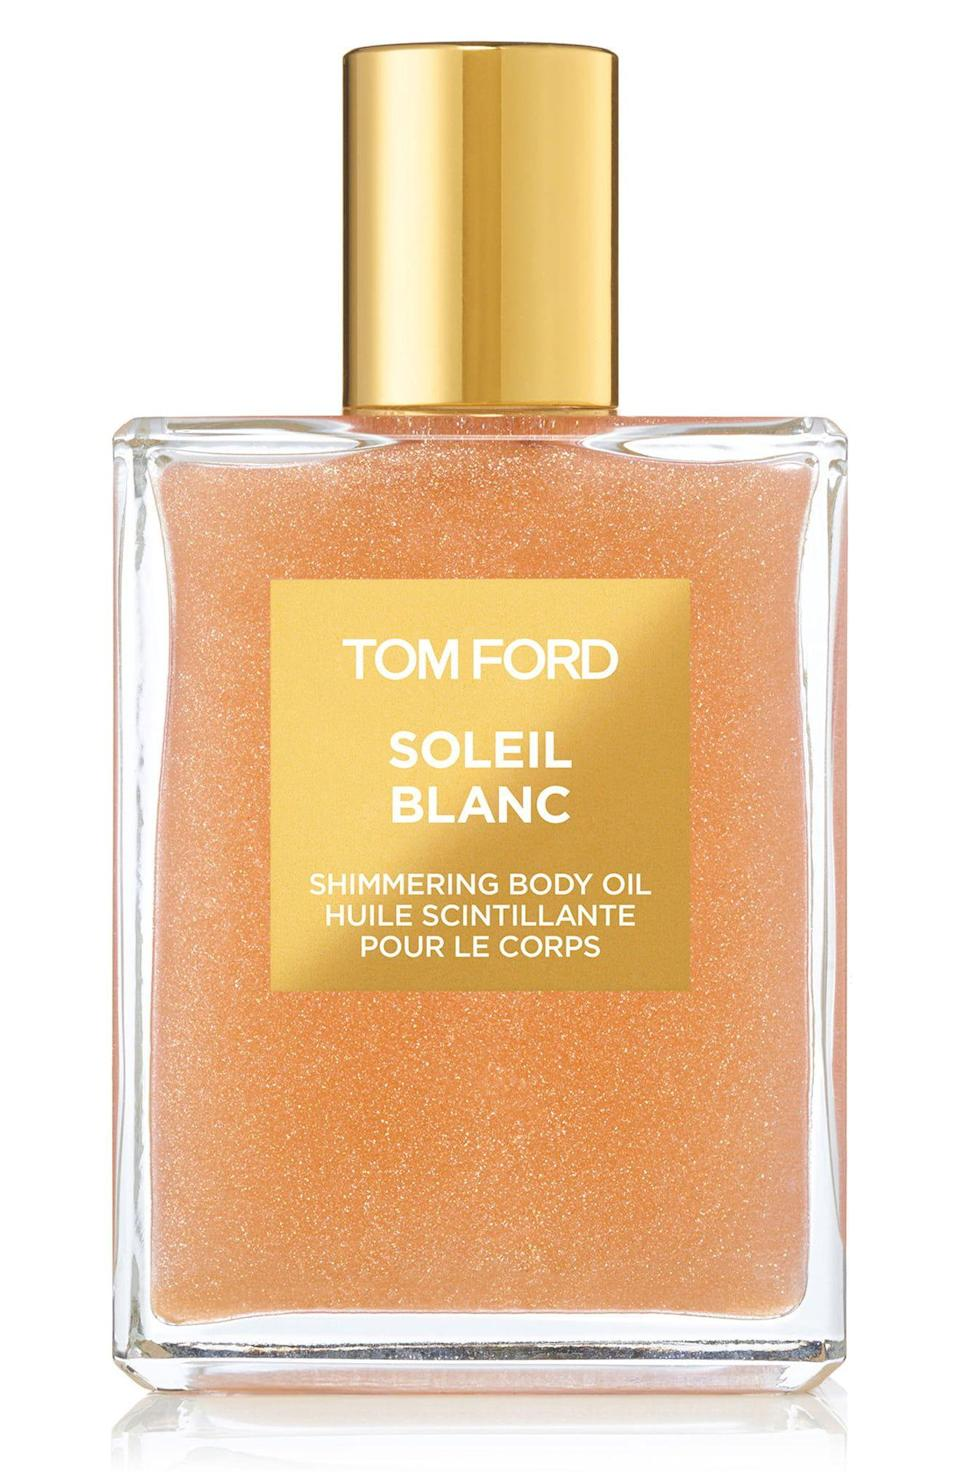 """<p><strong>Tom Ford</strong></p><p>nordstrom.com</p><p><strong>$85.00</strong></p><p><a href=""""https://go.redirectingat.com?id=74968X1596630&url=https%3A%2F%2Fshop.nordstrom.com%2Fs%2Ftom-ford-soleil-blanc-shimmering-body-oil%2F4295351&sref=https%3A%2F%2Fwww.townandcountrymag.com%2Fstyle%2Fg27168800%2Flast-minute-mothers-day-gifts%2F"""" rel=""""nofollow noopener"""" target=""""_blank"""" data-ylk=""""slk:Shop Now"""" class=""""link rapid-noclick-resp"""">Shop Now</a></p><p>Give her some glow with this smoothing, subtly shimmering body oil that will leave her skin beautifully scented with notes of bergamot and cardamom. </p>"""